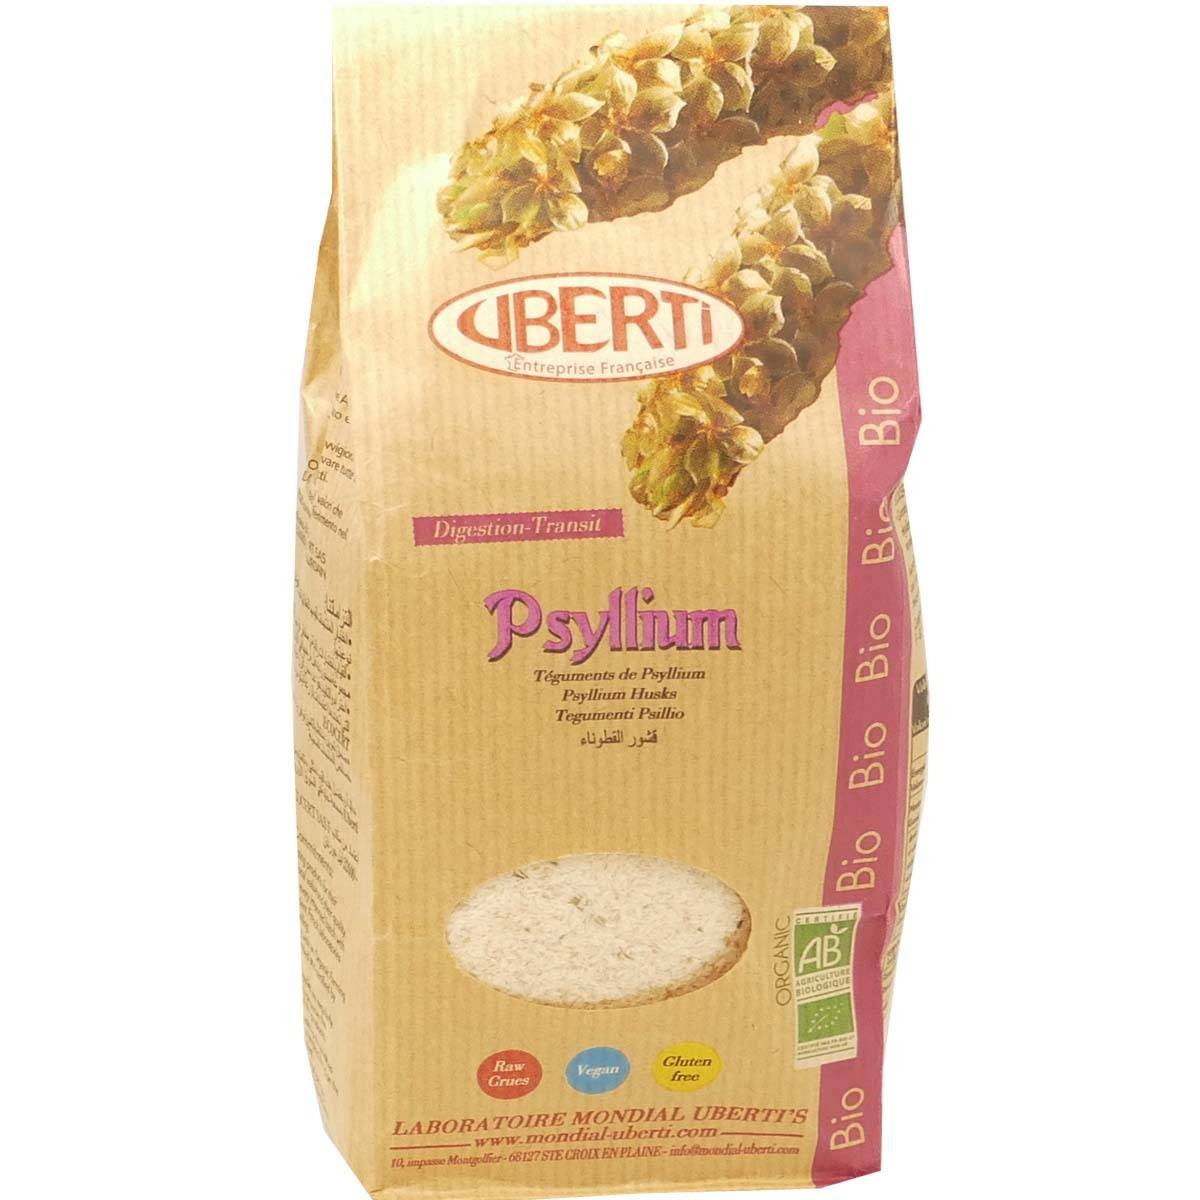 PHARM UP Uberti psyllium digestion transit bio 150 g